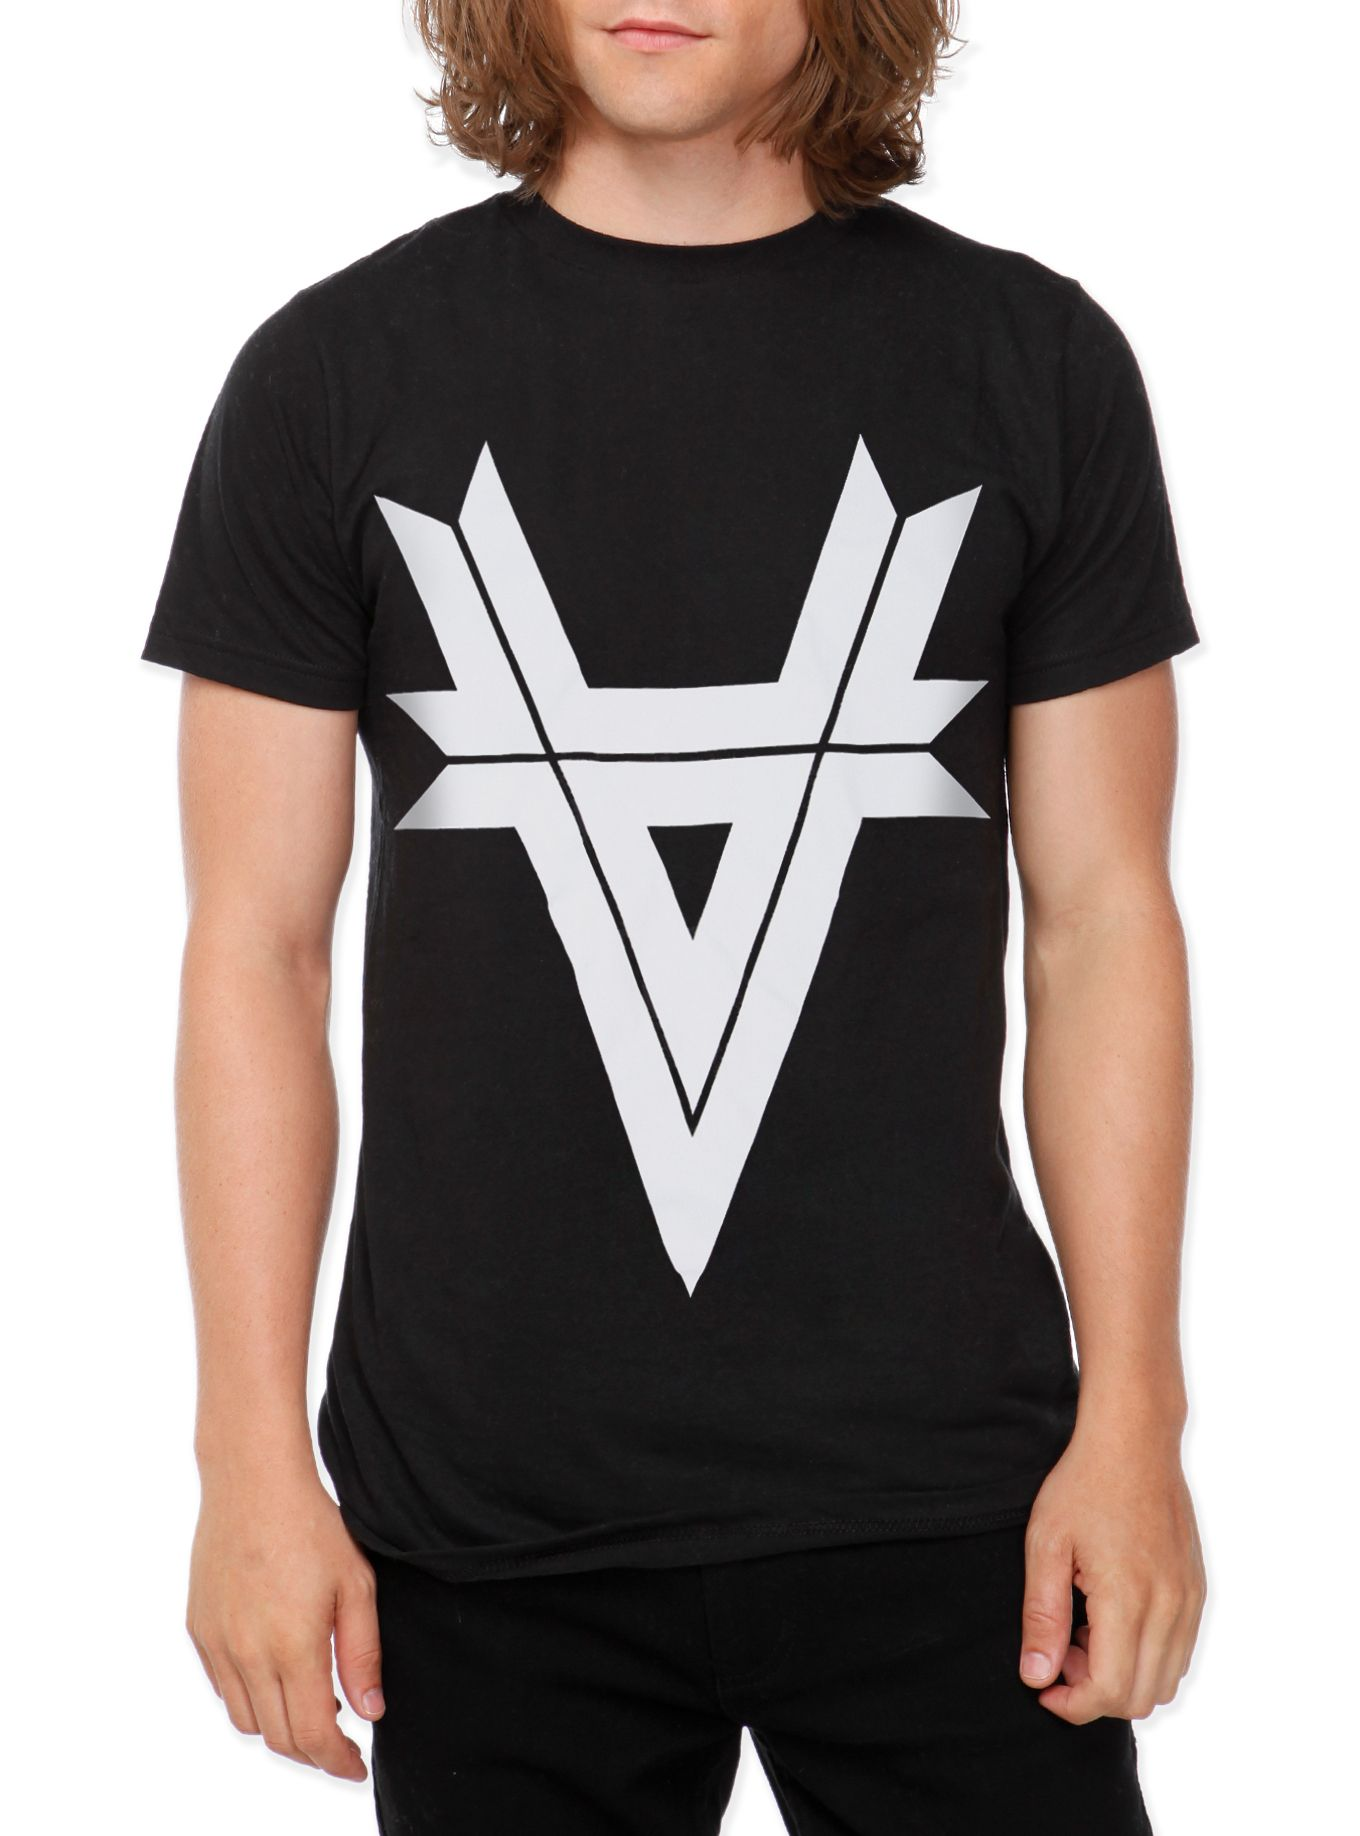 Anthem Logo T-Shirt | Anthem Made Clothing from Kellin Quinn of Sleeping with Sirens